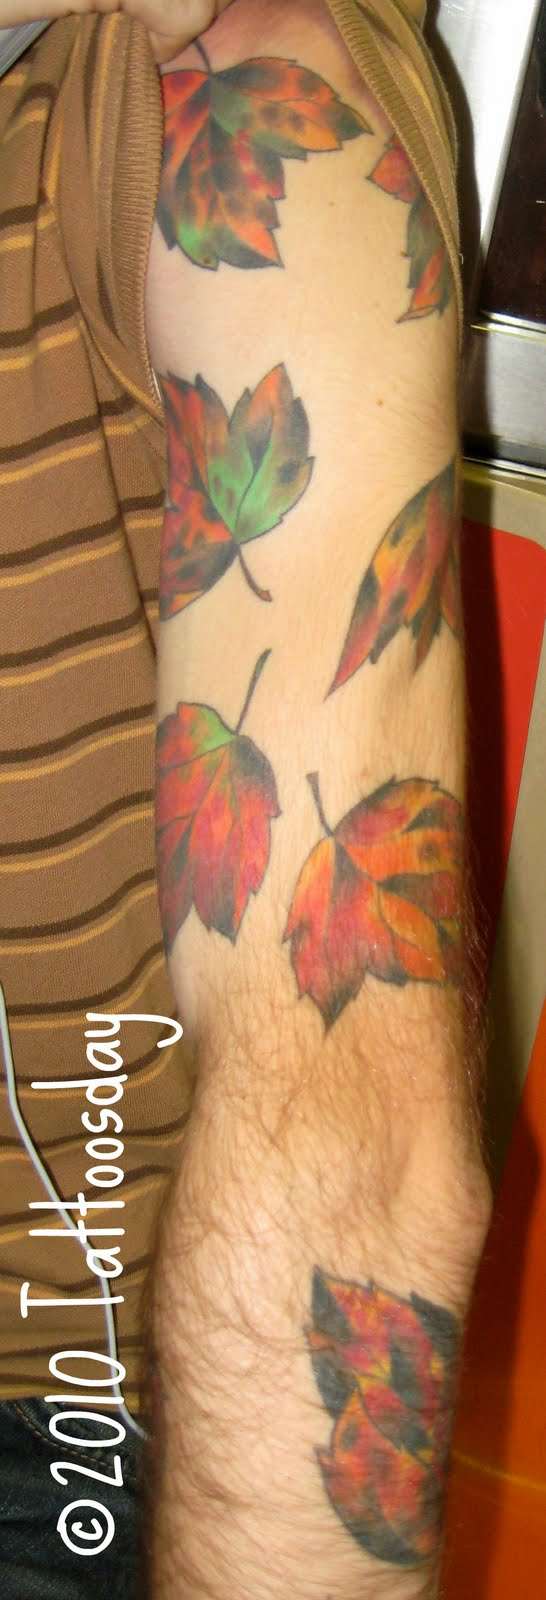 Tattoo steve 39 s sleeve of leaves ushers in the fall season for Steve s tattoo